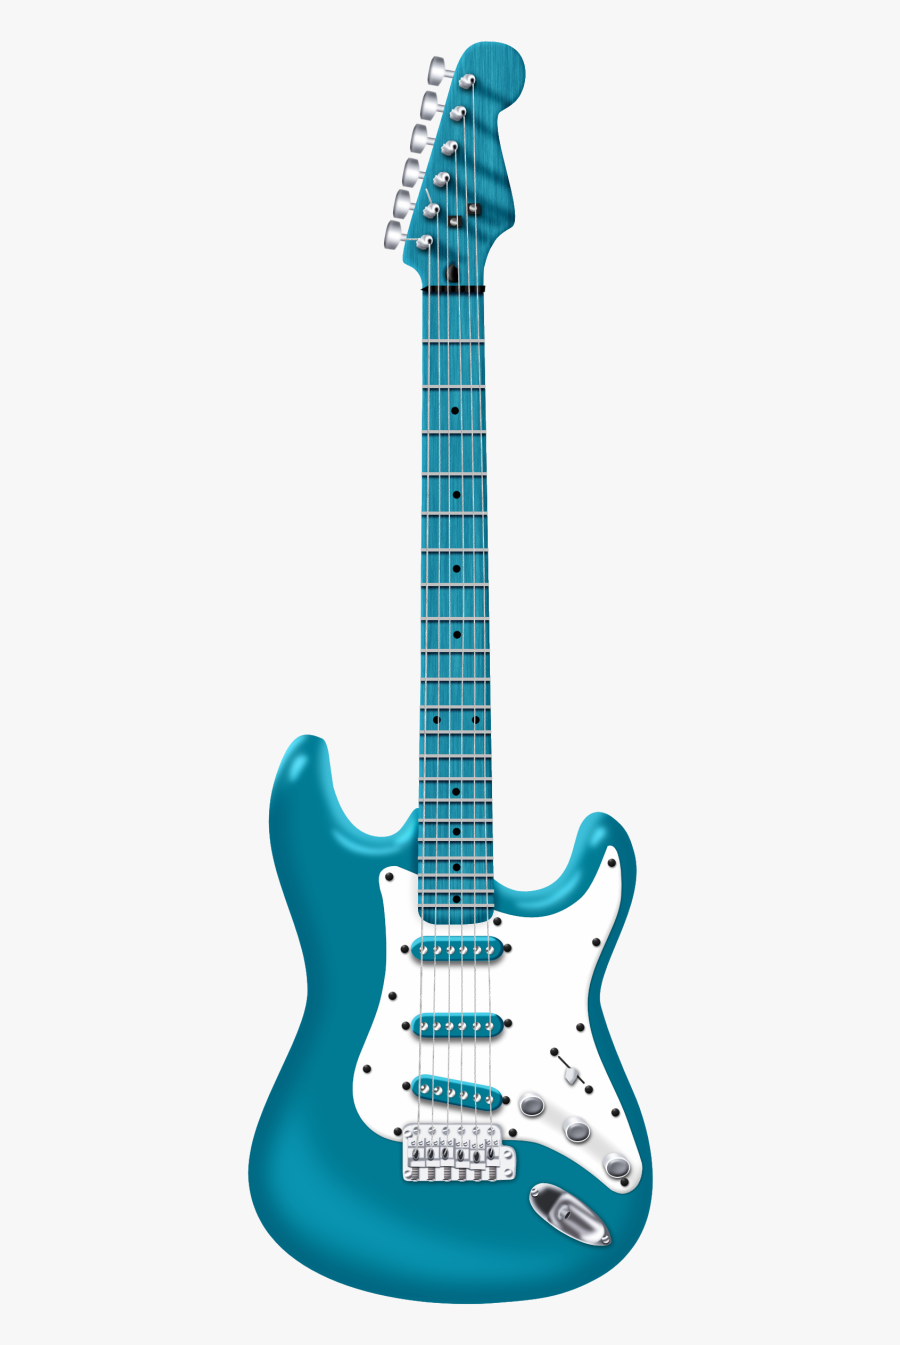 stratocaster guitar clipart | joe wings free clip art clasp allows for dec